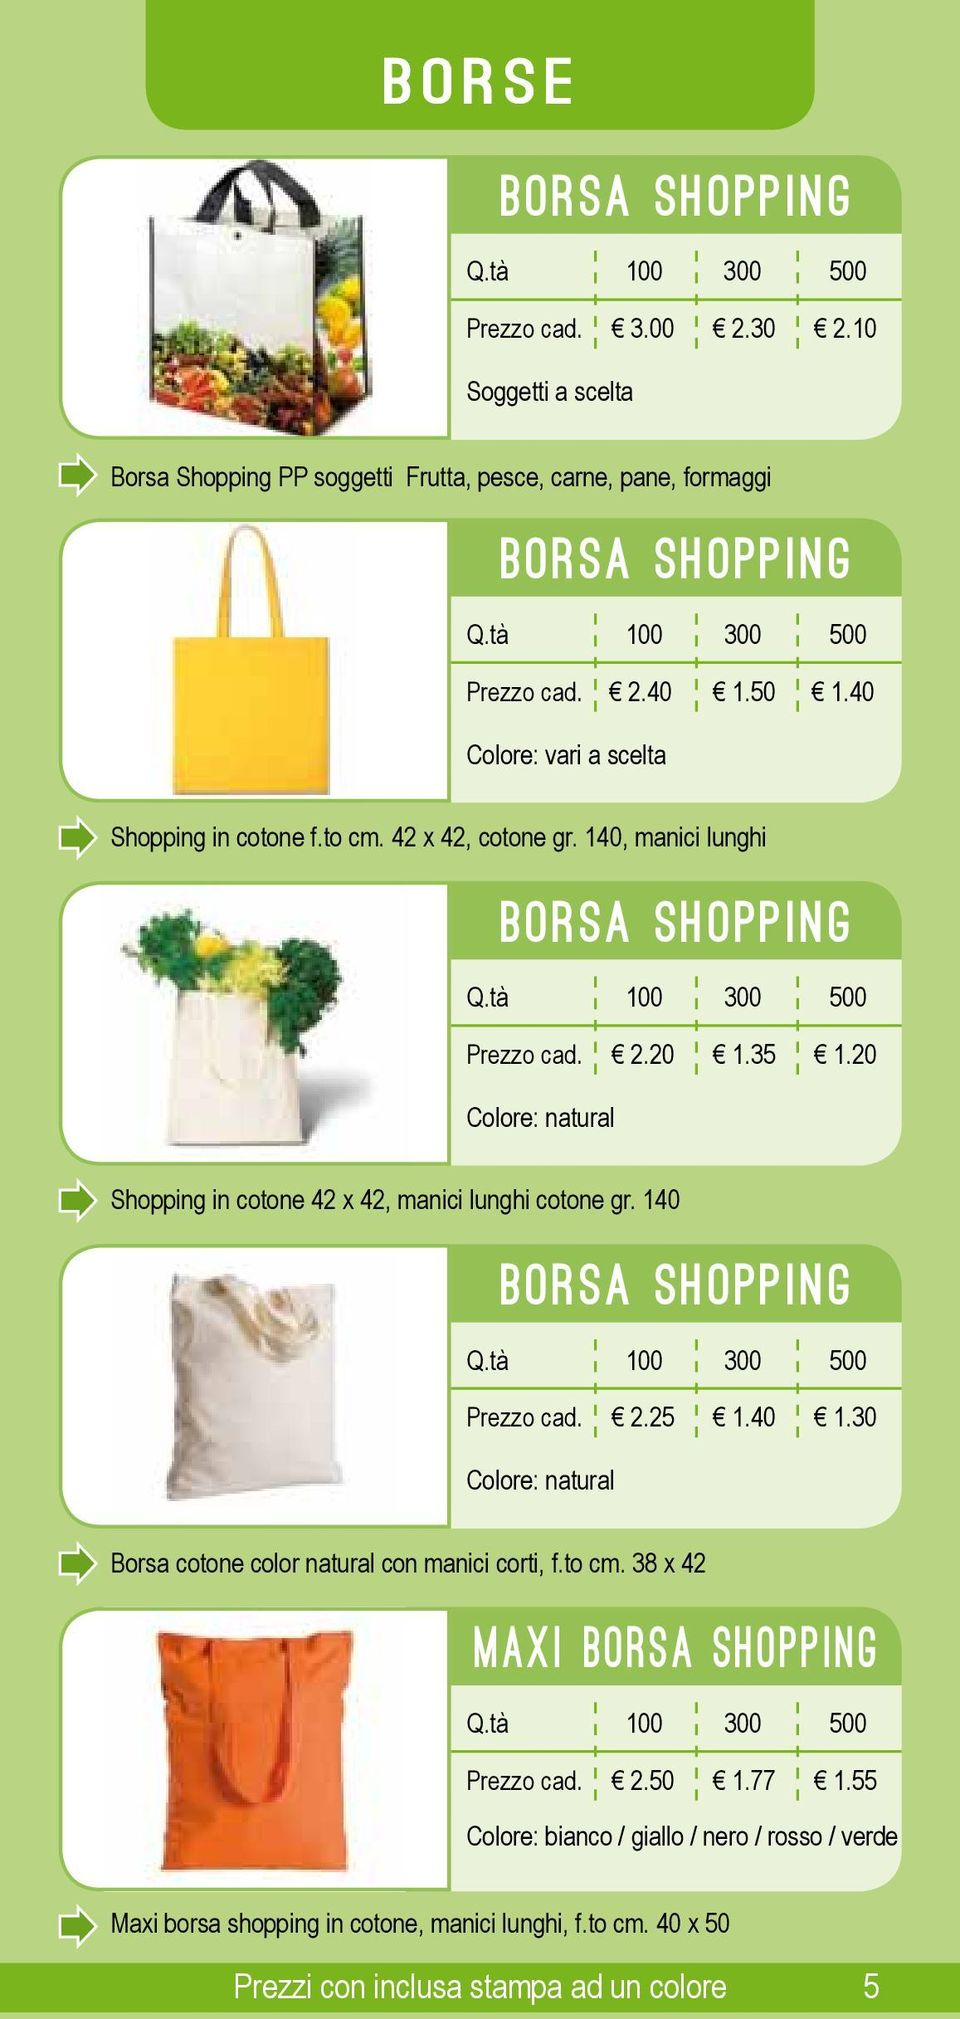 20 Colore: natural Shopping in cotone 42 x 42, manici lunghi cotone gr. 140 borsa shopping 2. 1.40 1.